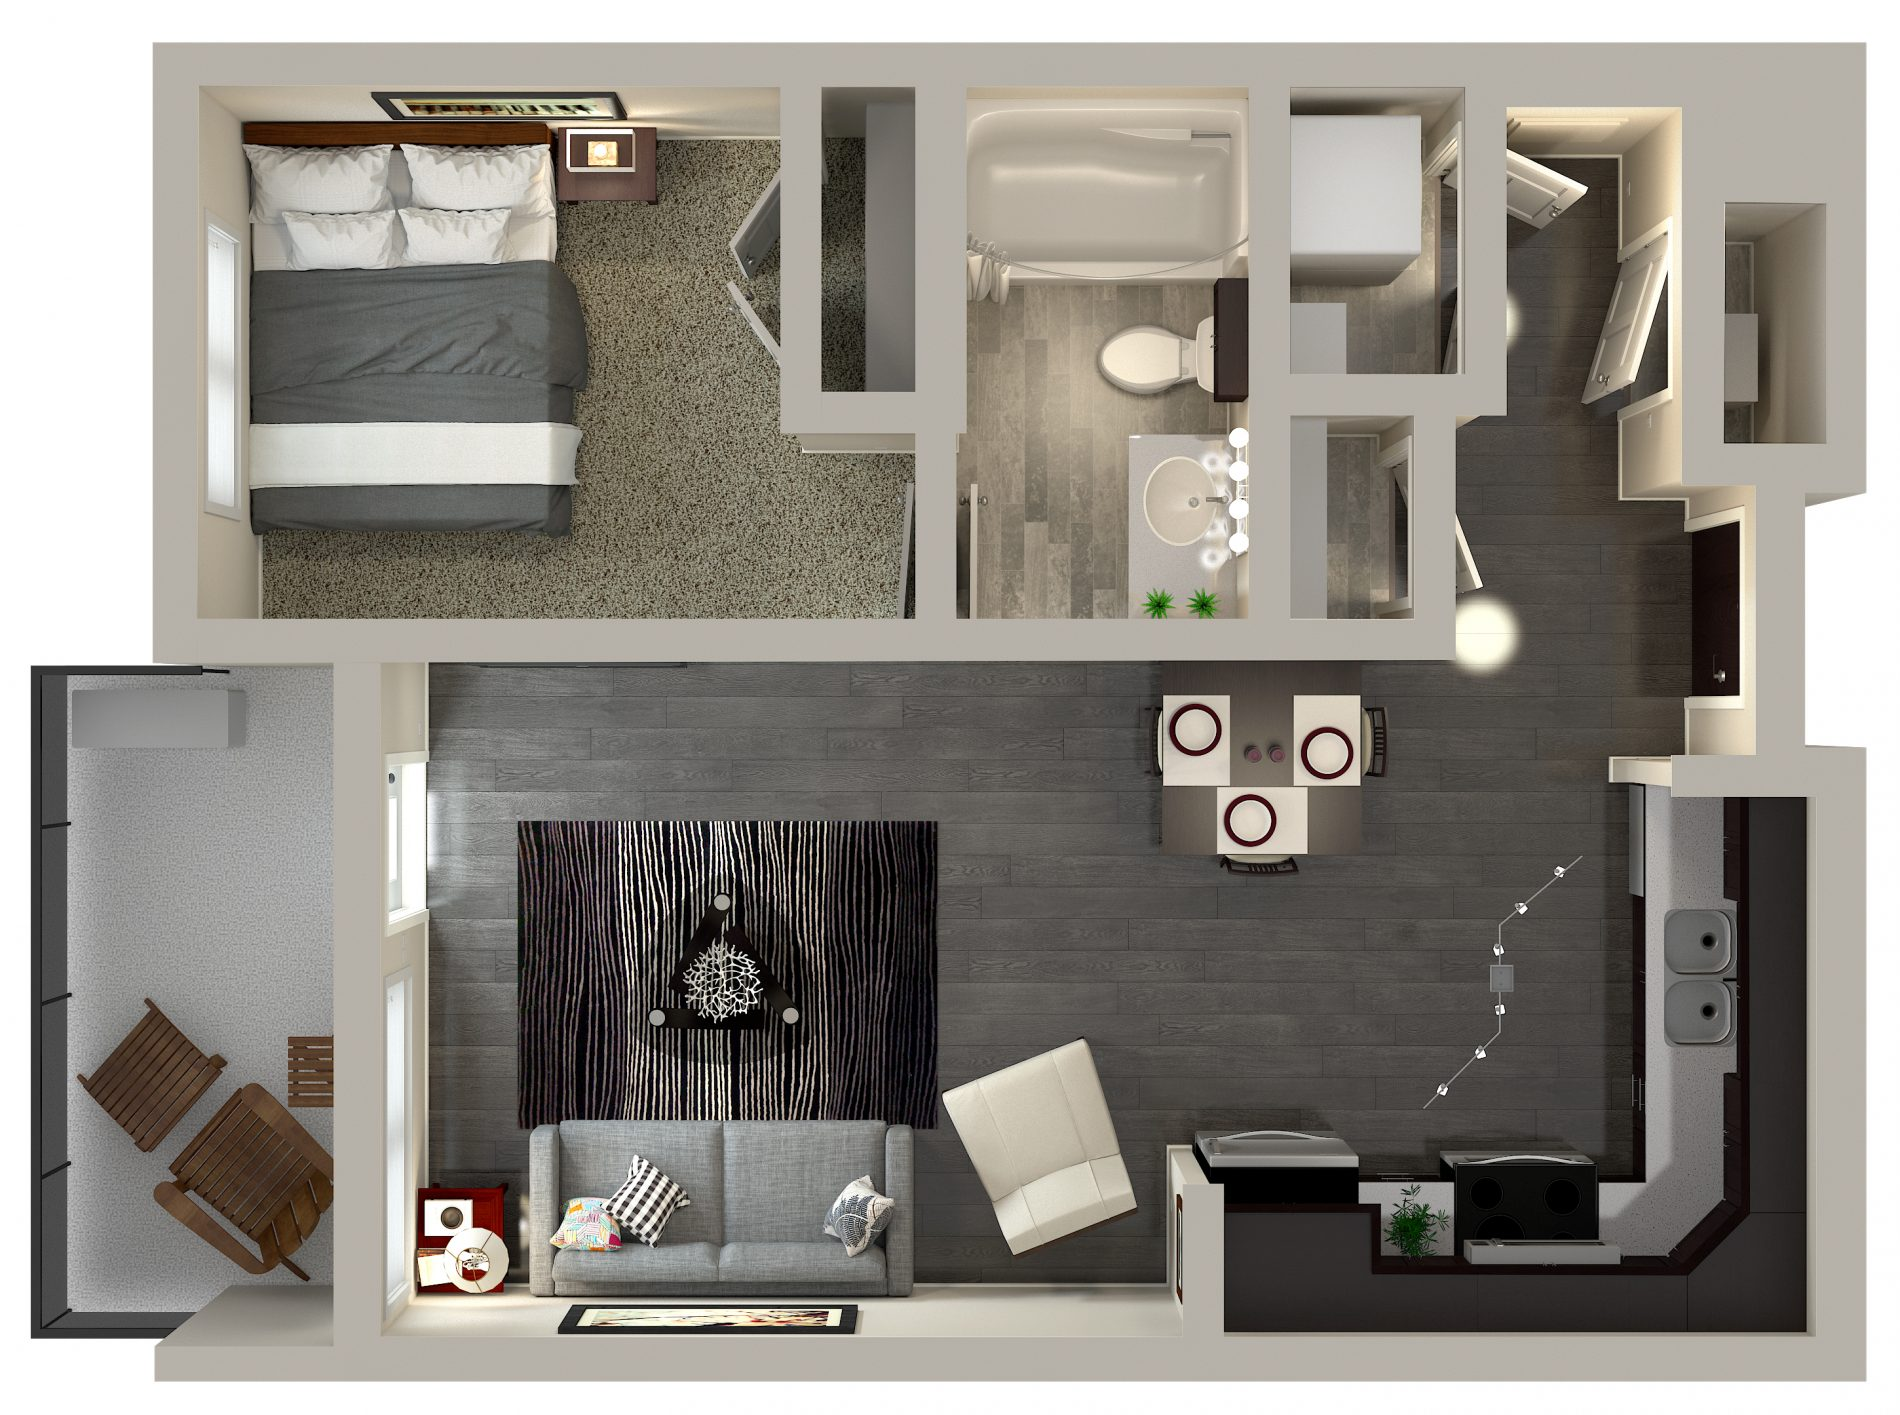 Urban Flats 1 Bedroom Condo Floor Plan